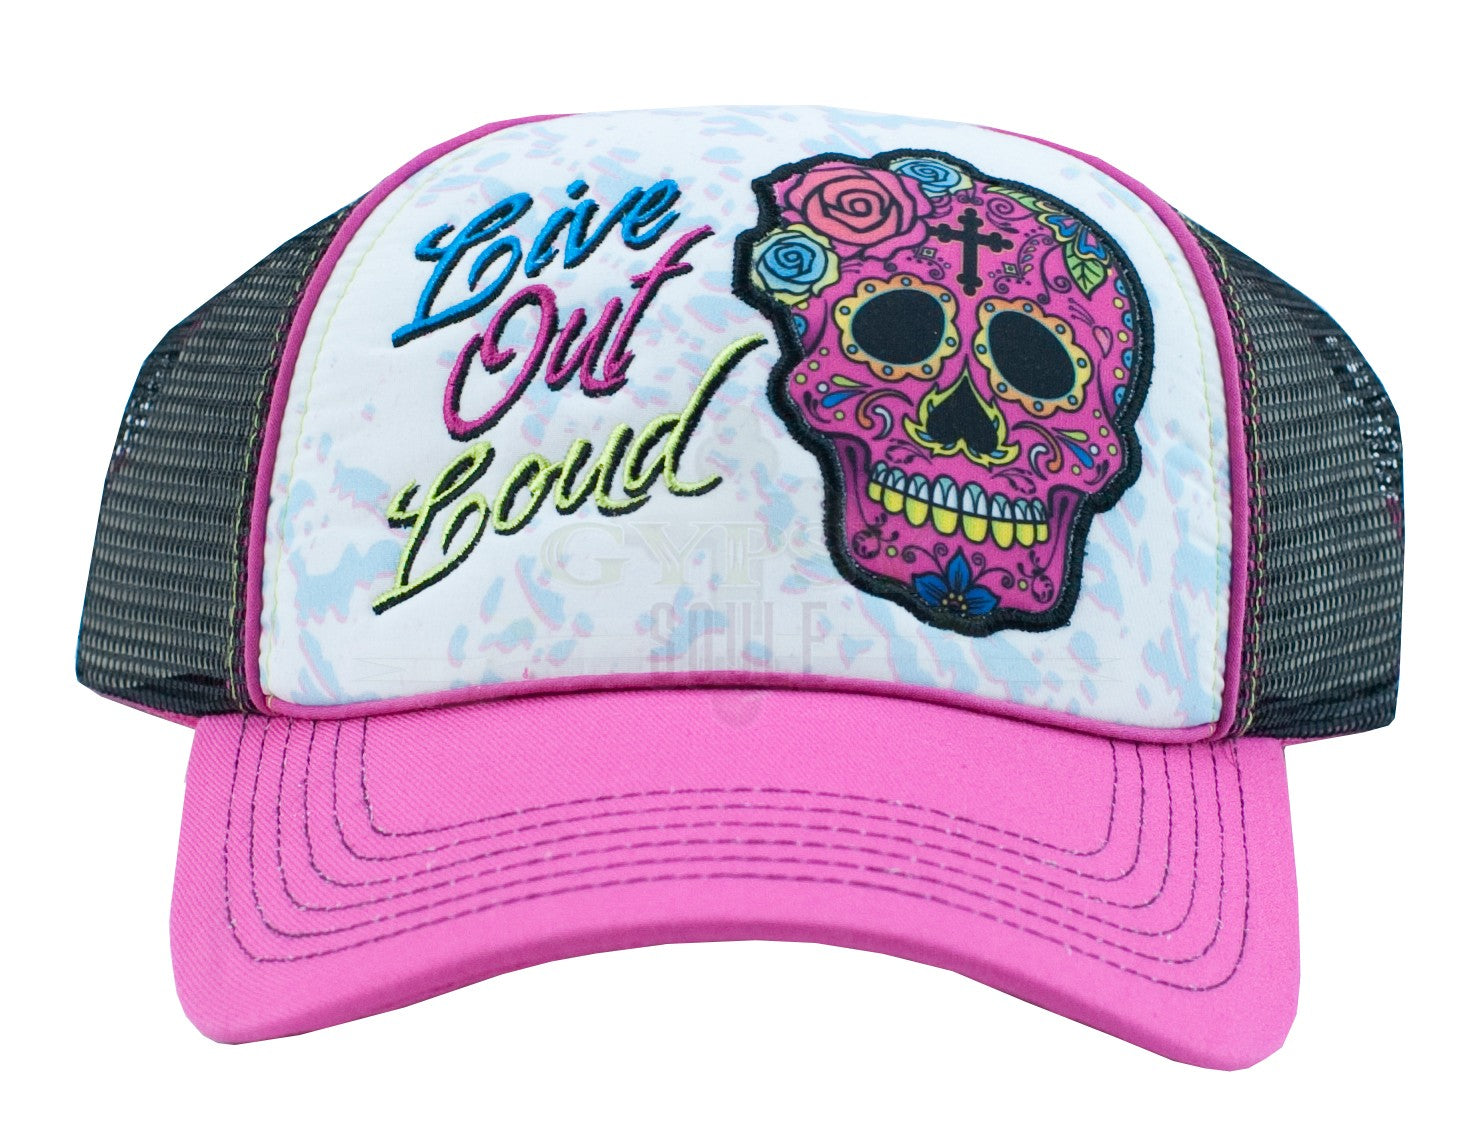 Gypsy Soule Live Out Loud Mesh Cap